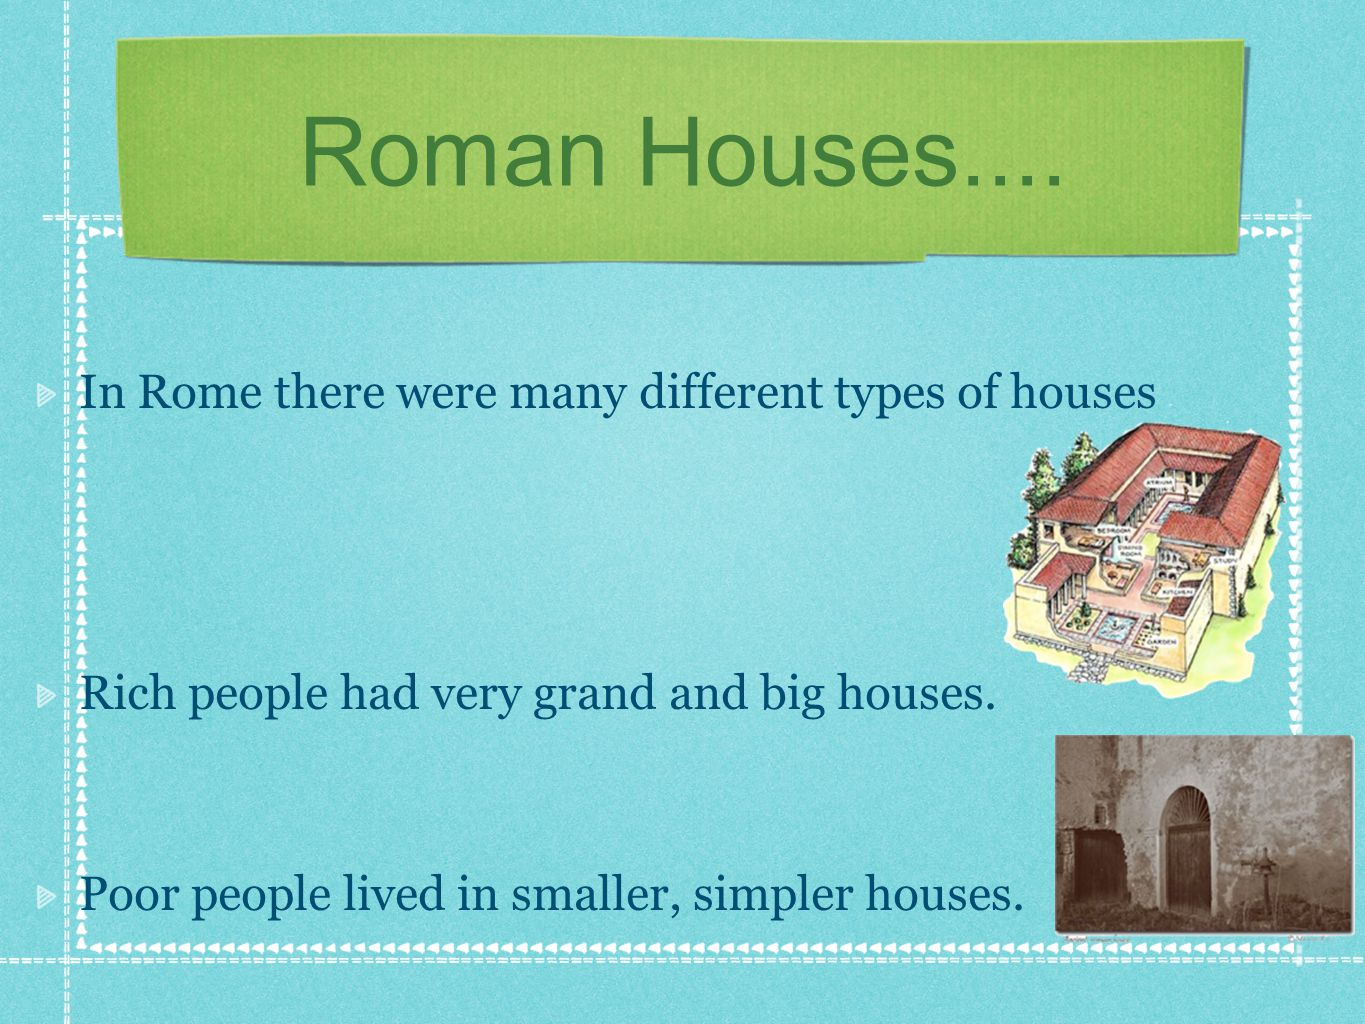 Roman Houses.... In Rome there were many different types of houses